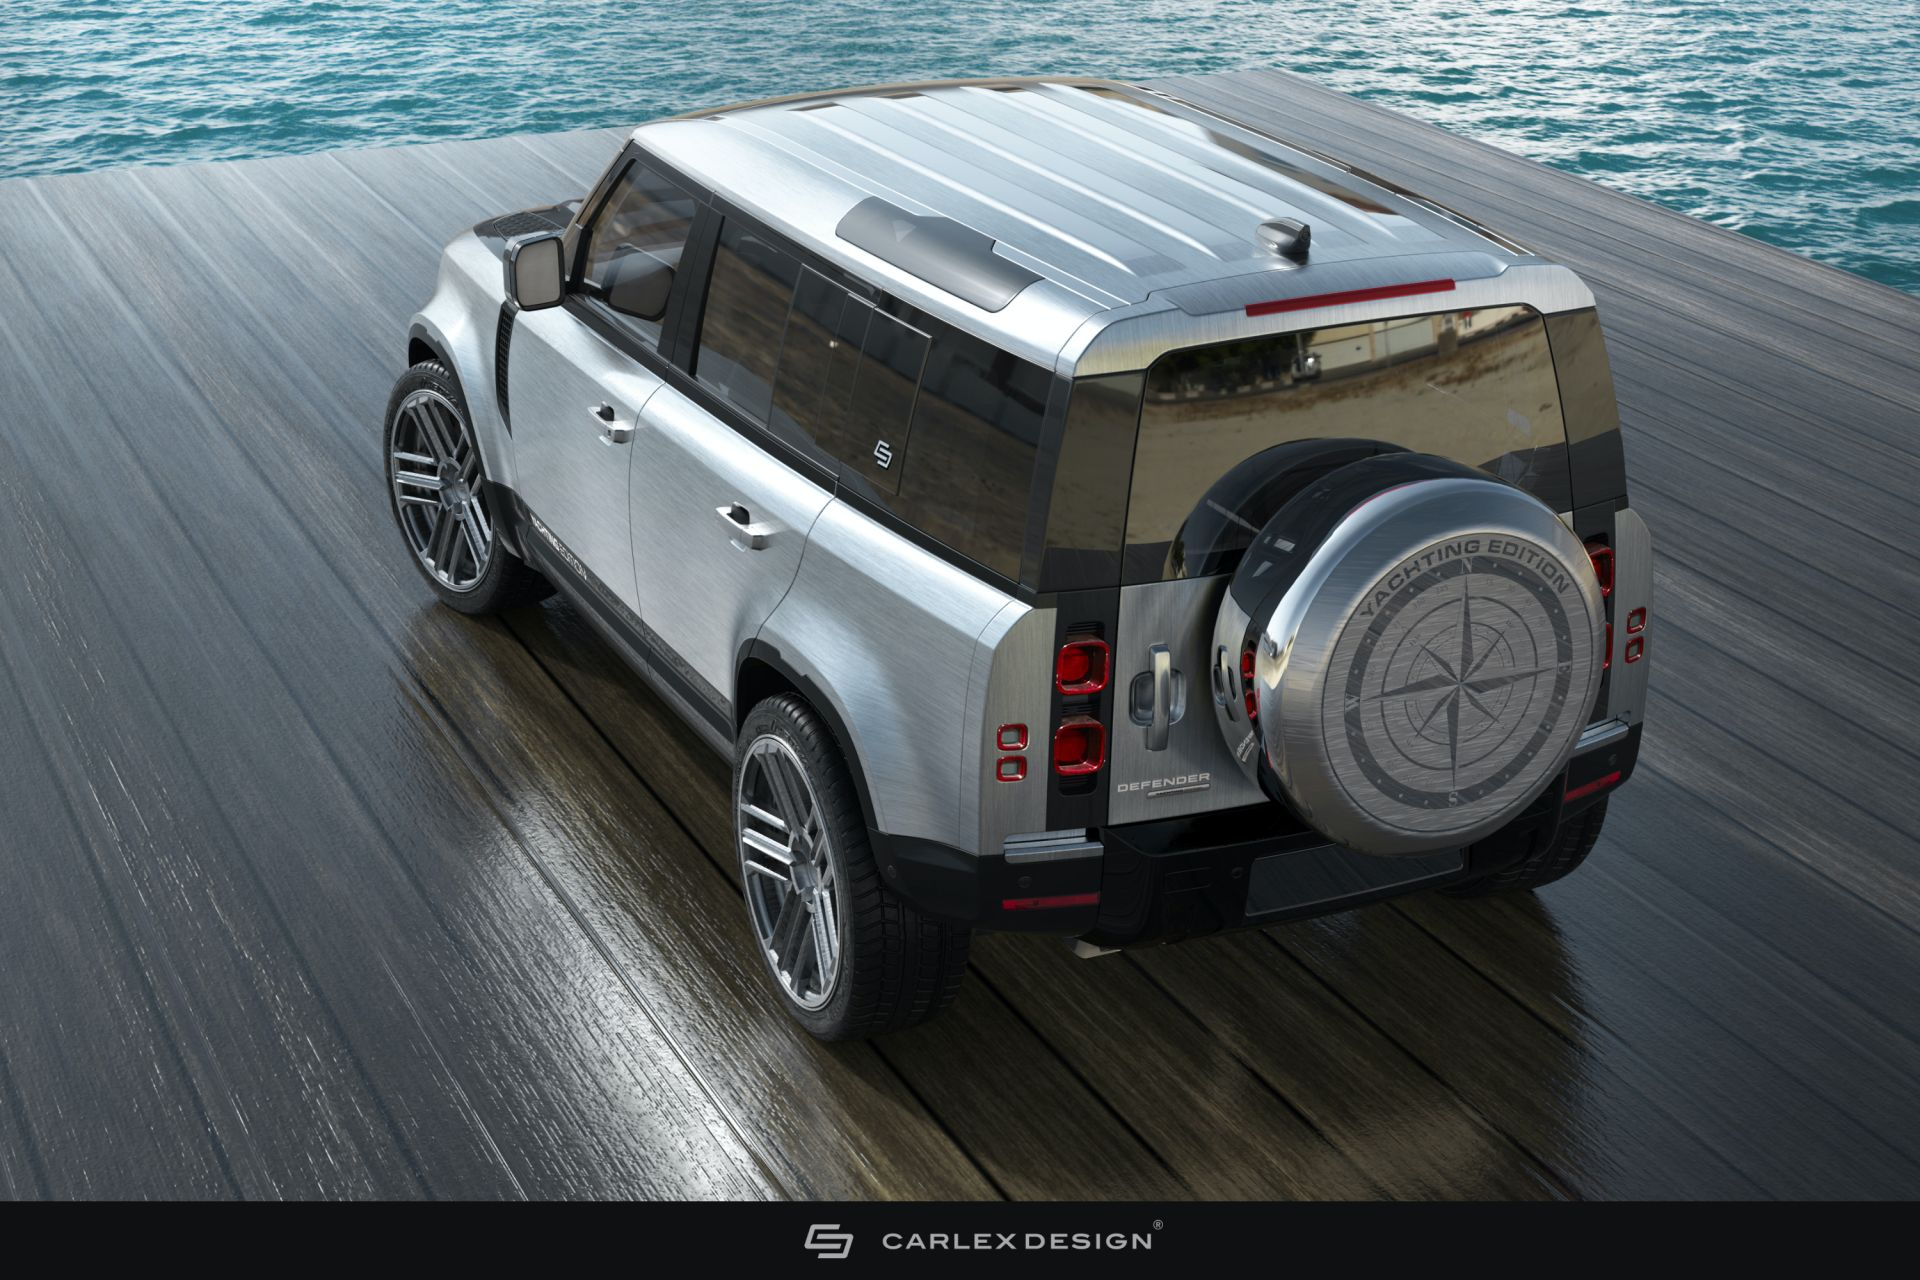 Land-Rover-Defender-Yachting-Edition-by-Carlex-Design-5